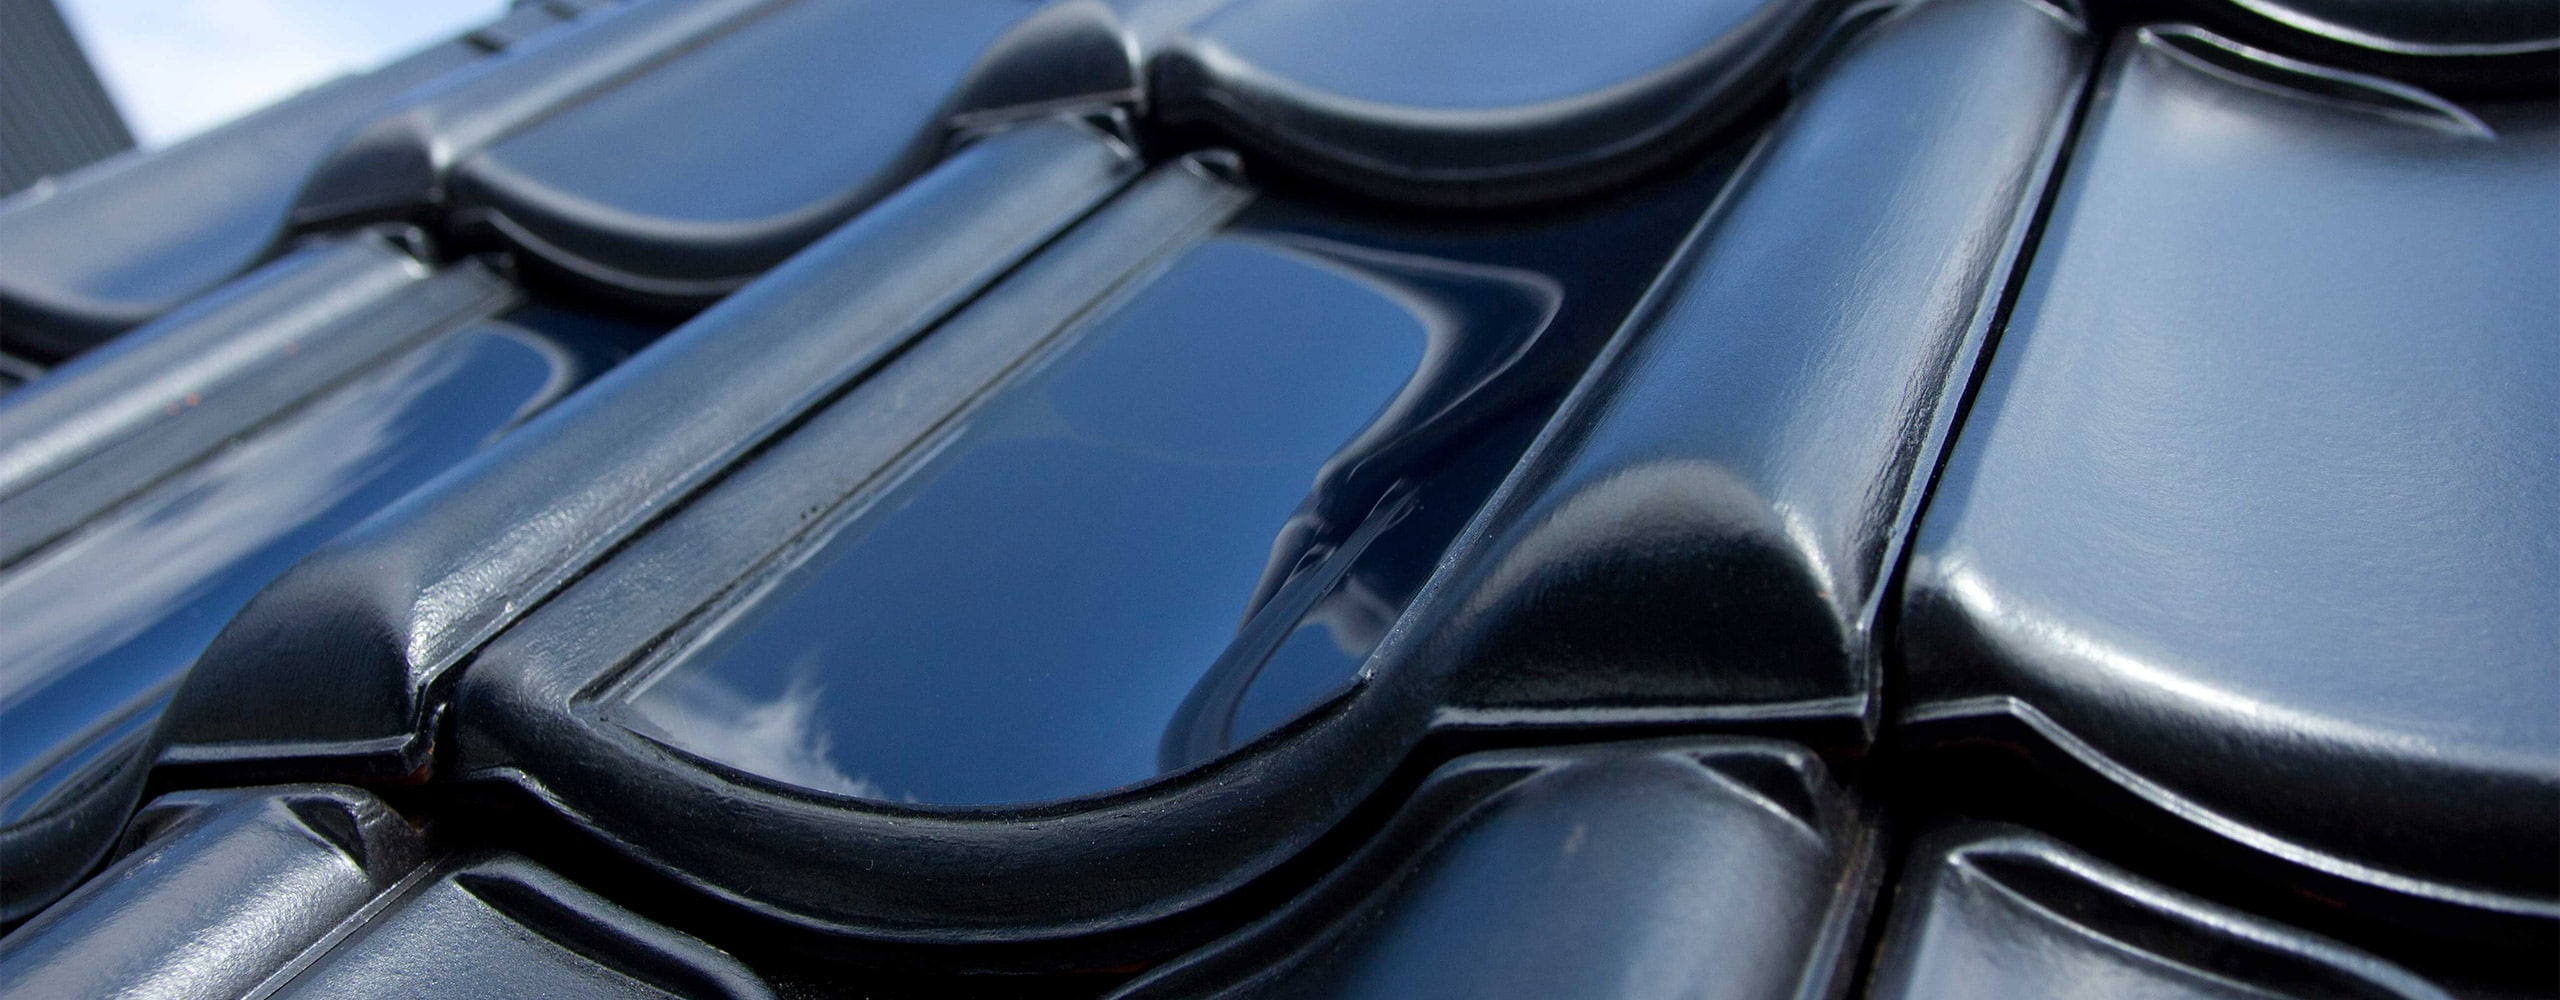 Solar roof tile the elegant source of power flexsol solutions flexsol solar roof tile curved solar panel for bipv in black ceramic dailygadgetfo Gallery